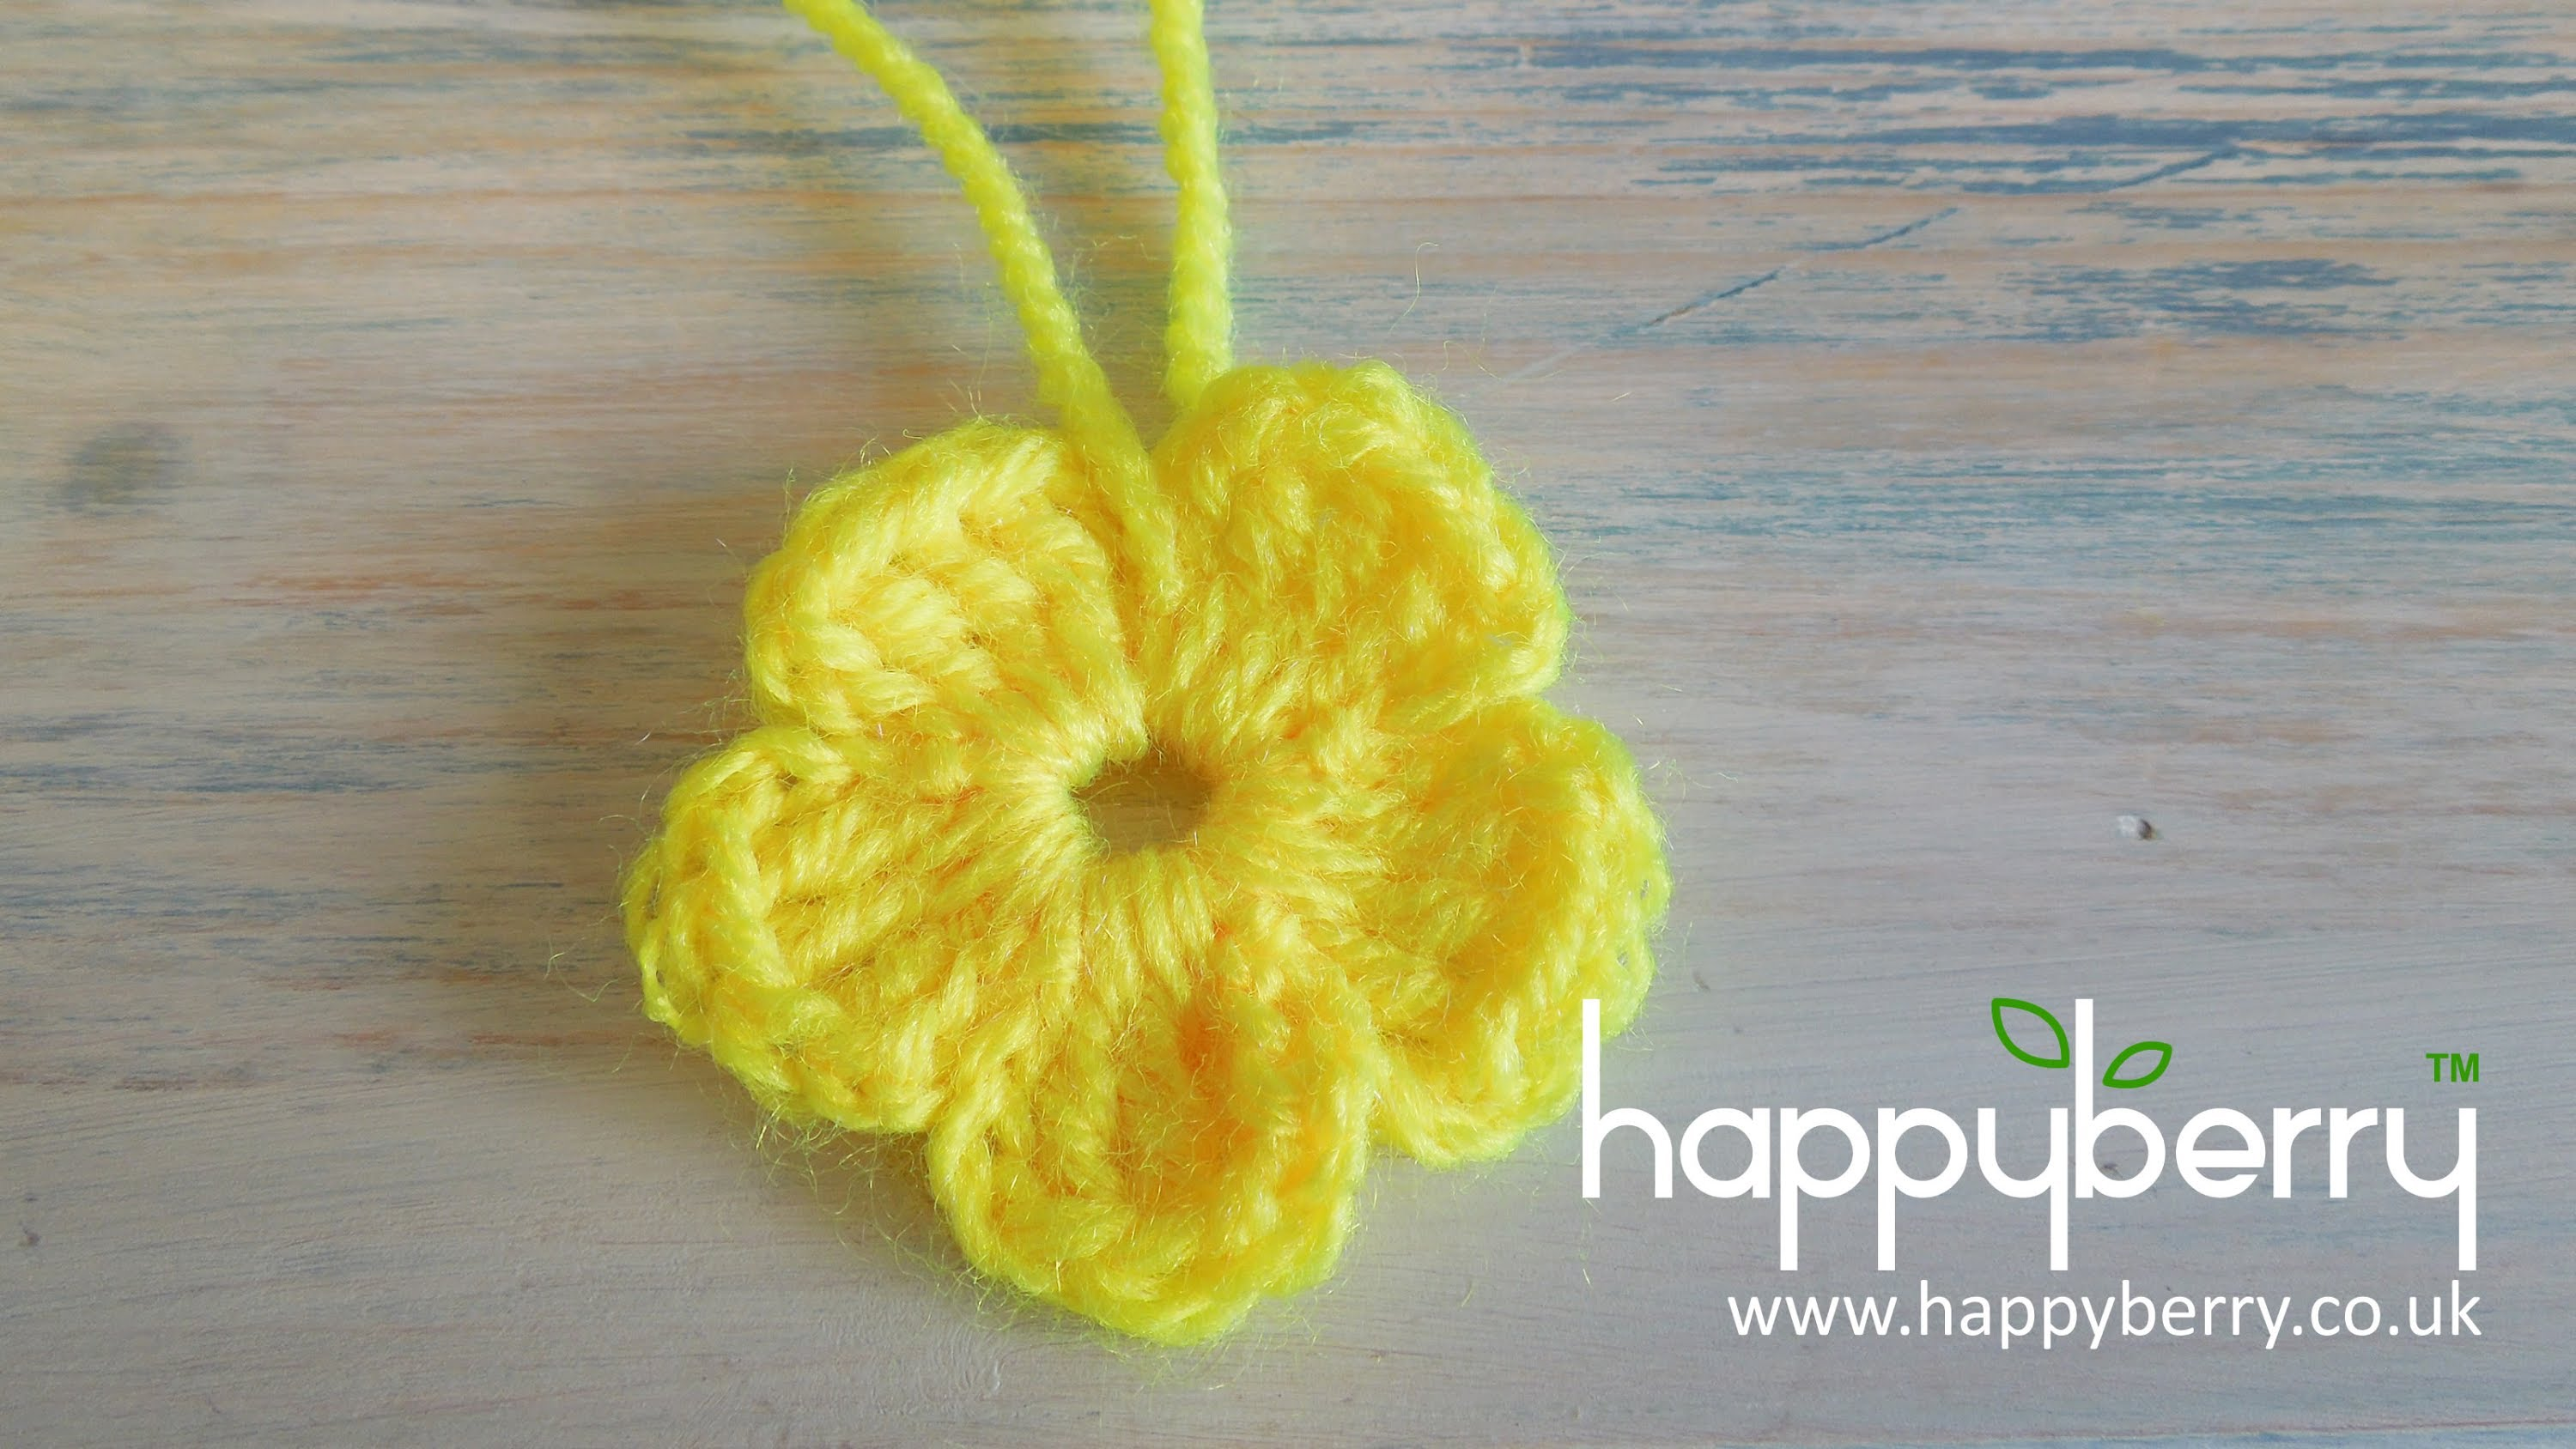 easy crochet flower (crochet) how to - crochet a simple flower version 2 - absolute beginners ijqbhlq